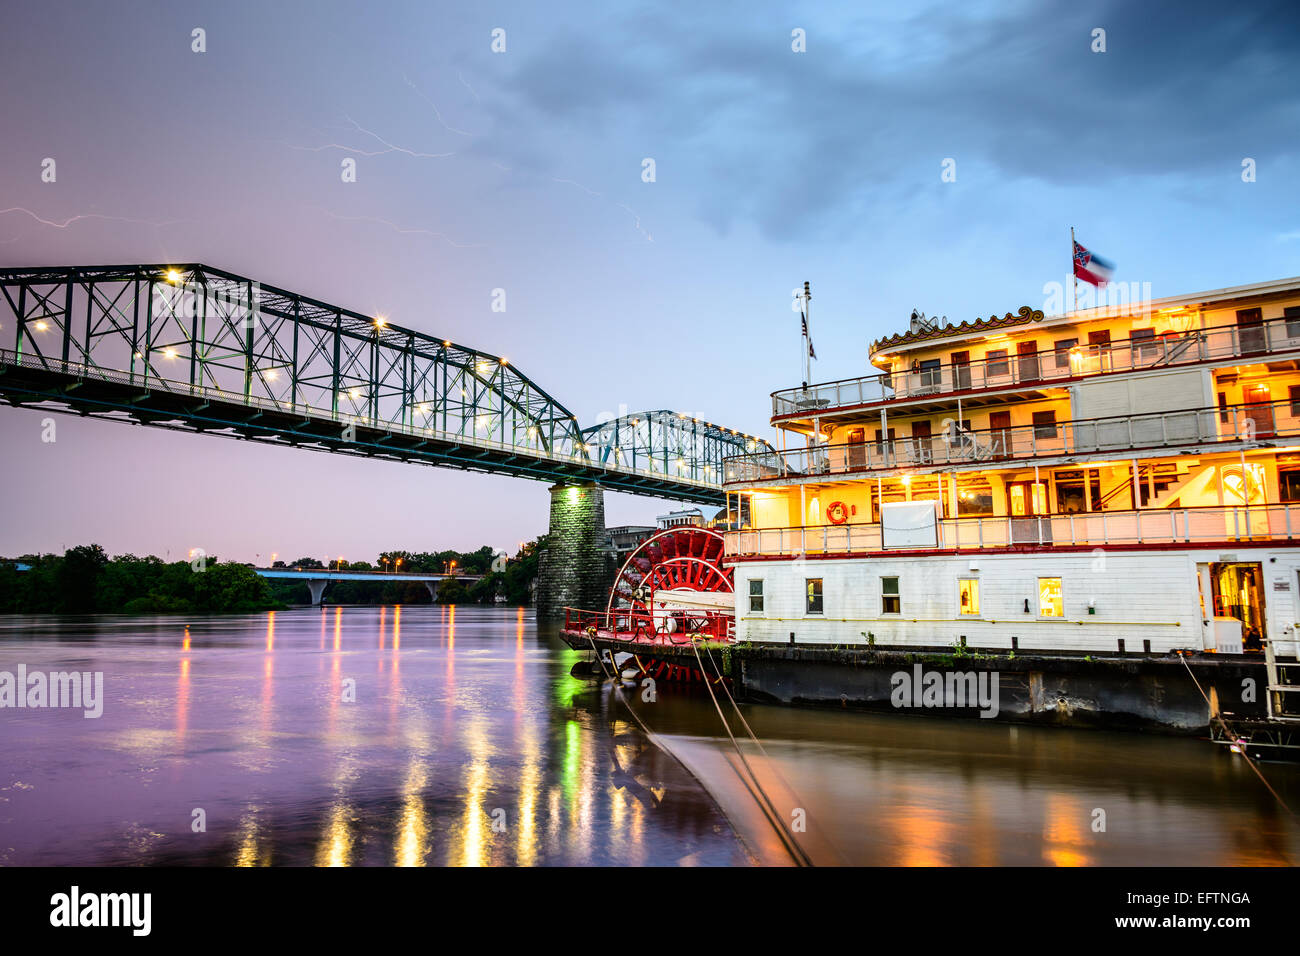 Chattanooga, Tennessee, USA on the Tennessee River. - Stock Image